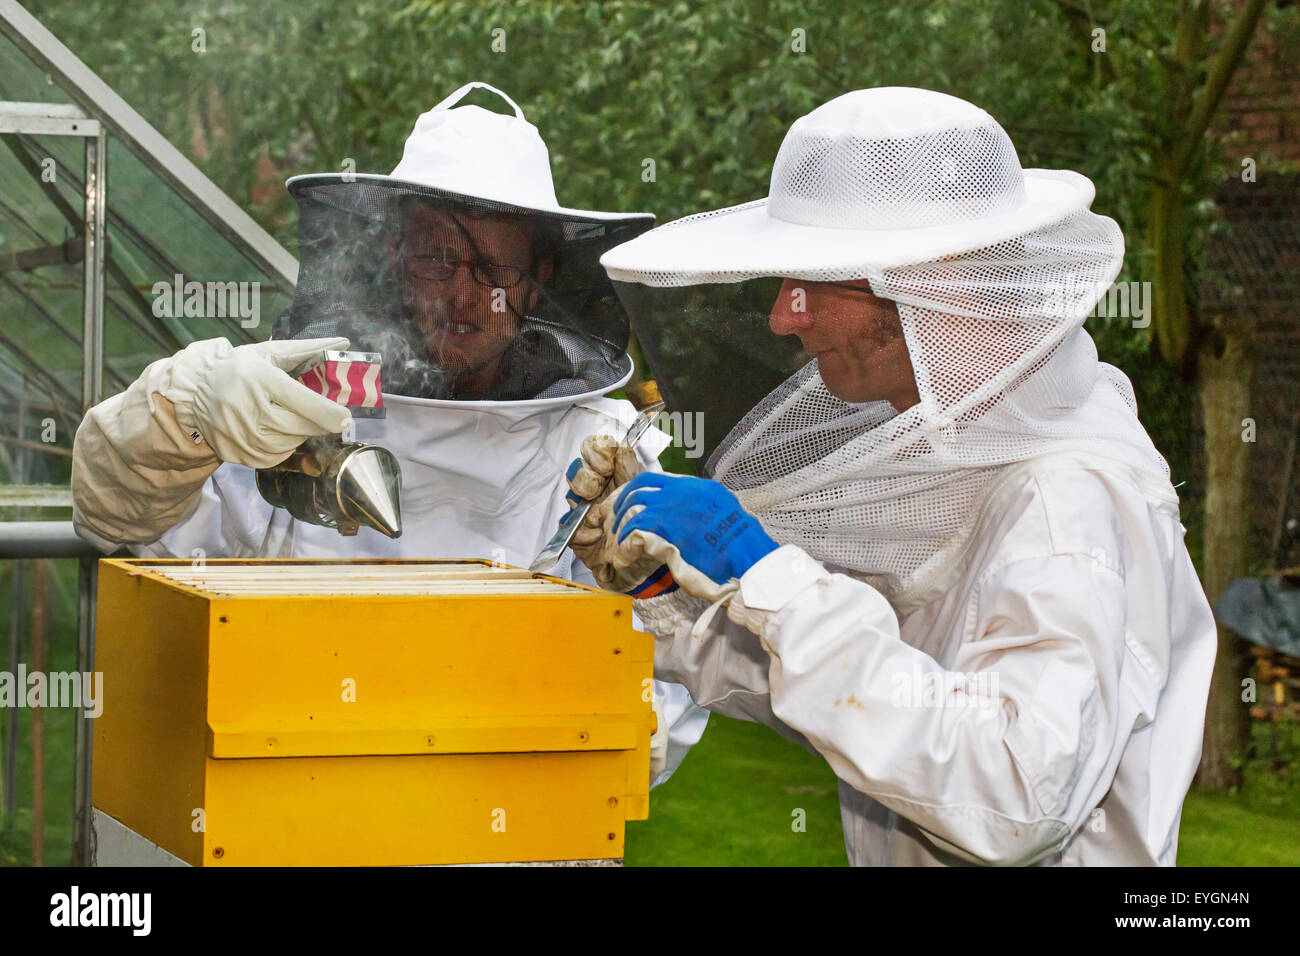 Two beekeepers in protective clothing with bee smoker open beehive to inspect combs from honey bees (Apis mellifera) - Stock Image